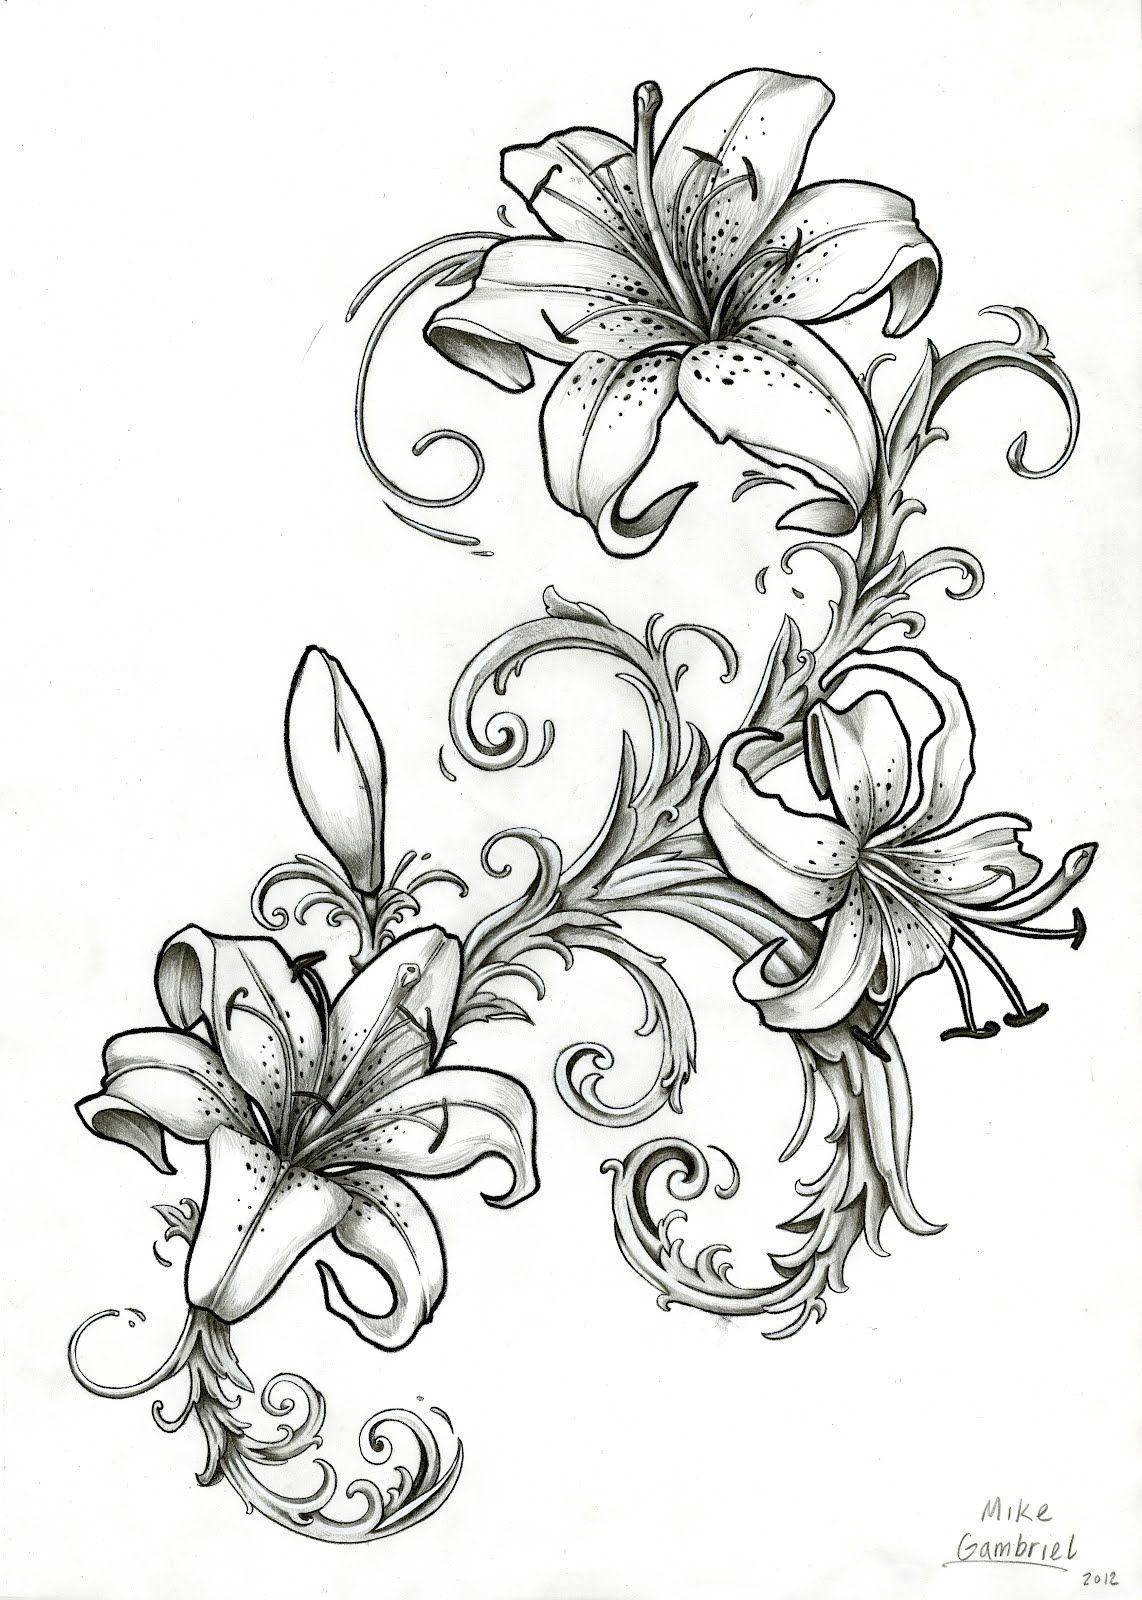 Stargazer lily drawing outline viewing gallery pictures flowers stargazer lily drawing outline viewing gallery pictures izmirmasajfo